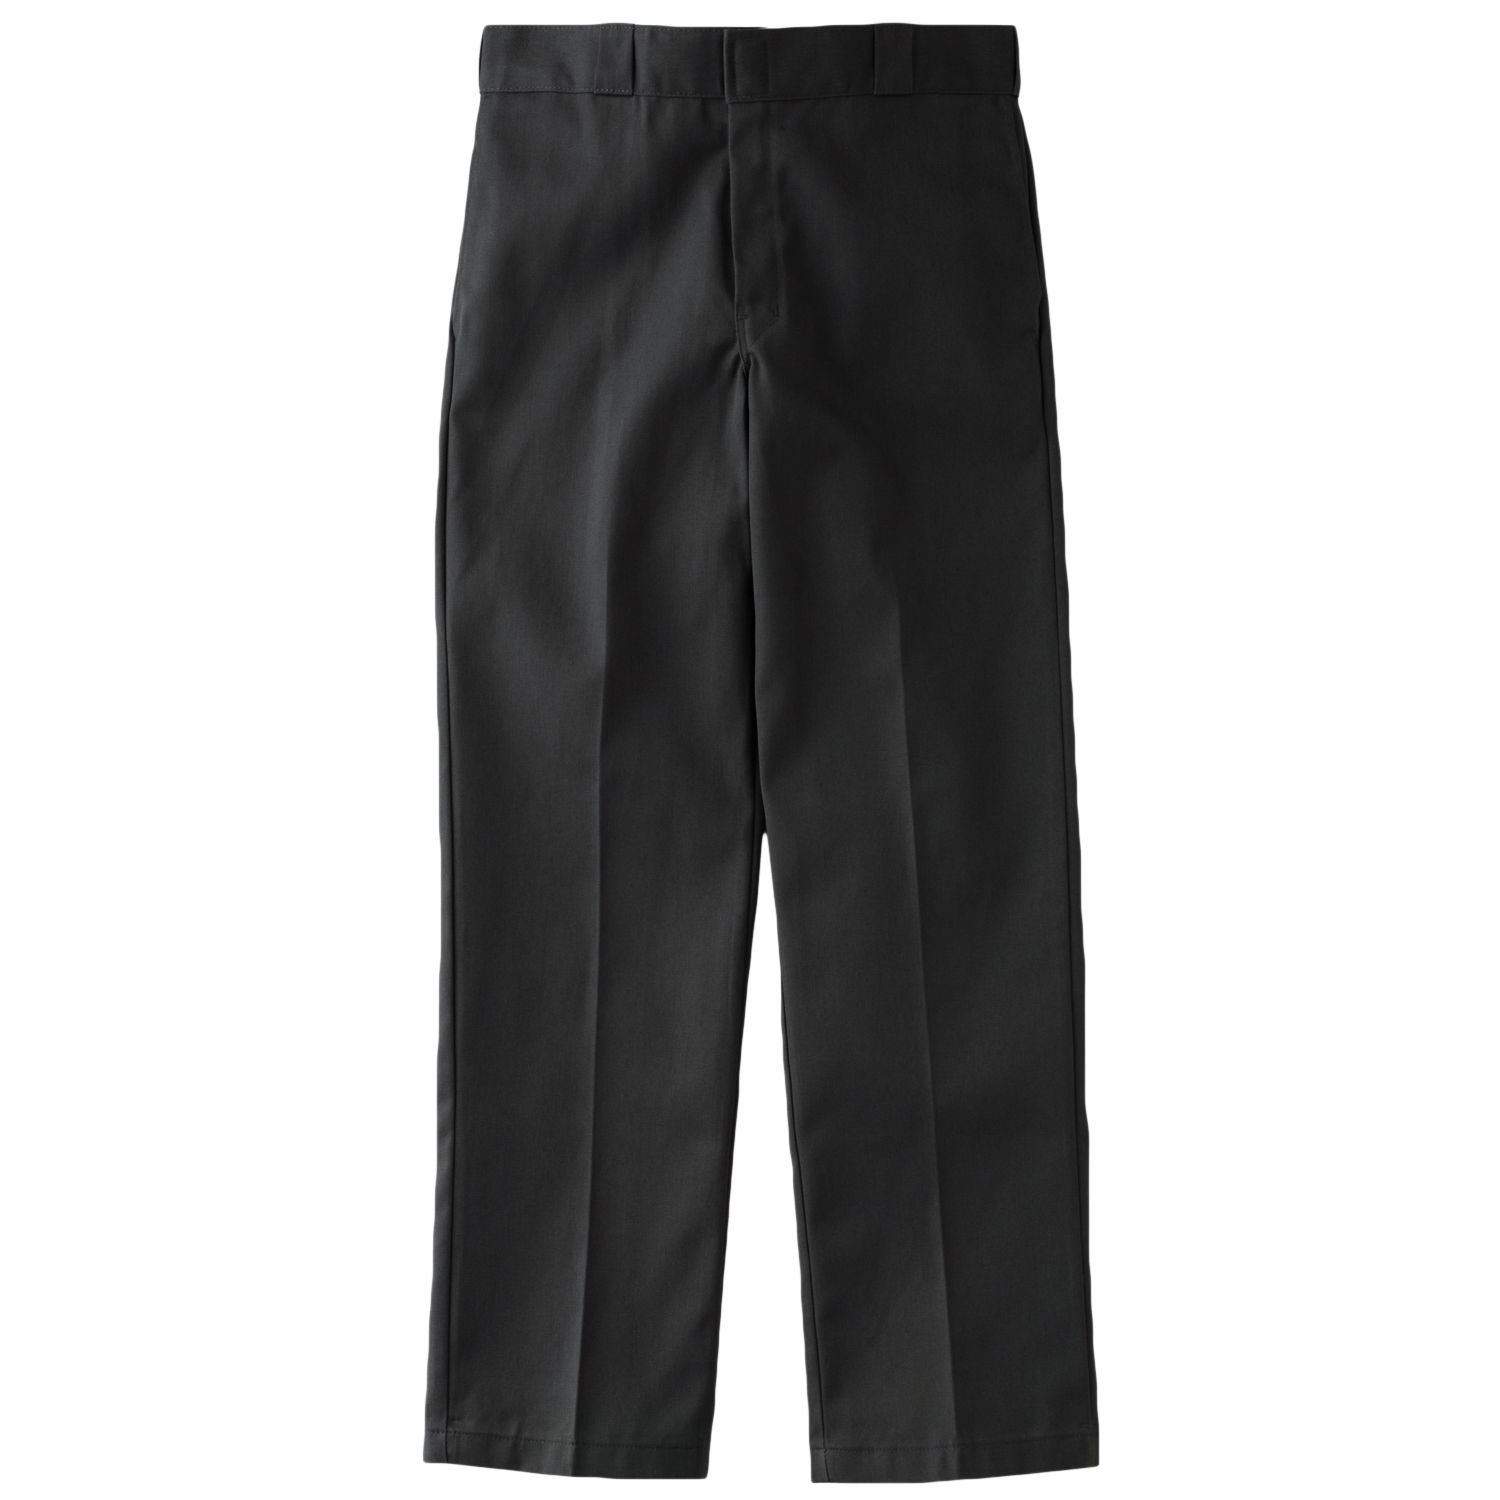 Where Can I Get Black Work Pants